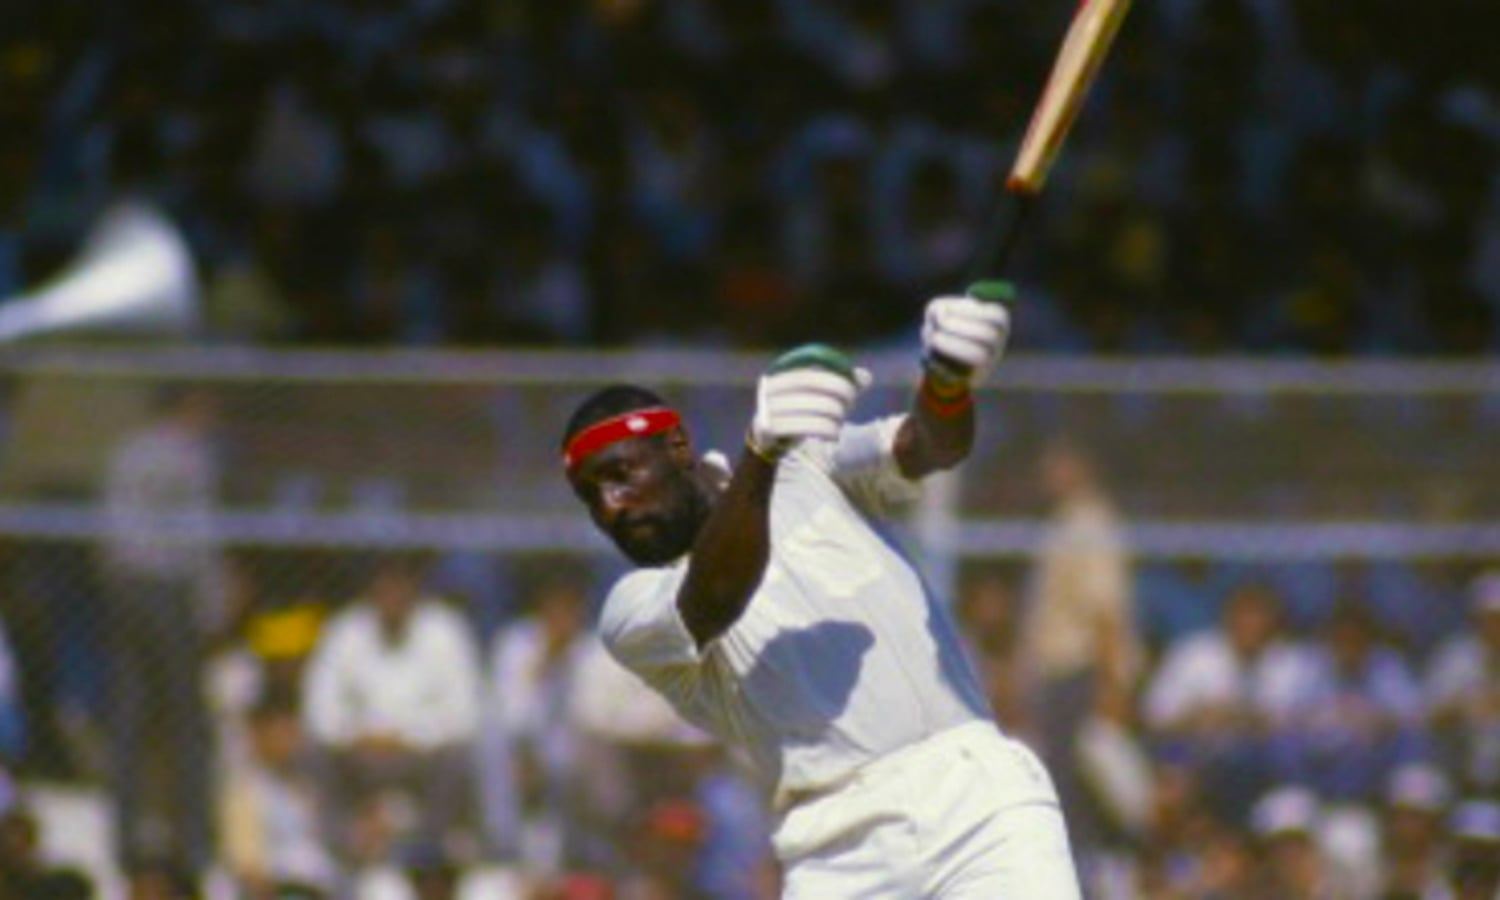 1987: Jam-packed crowds watch master West Indian batsman, Viv Richards, hit out during a 1987 World Cup match at National Stadium. (Pic: The Pakistan Cricketer)